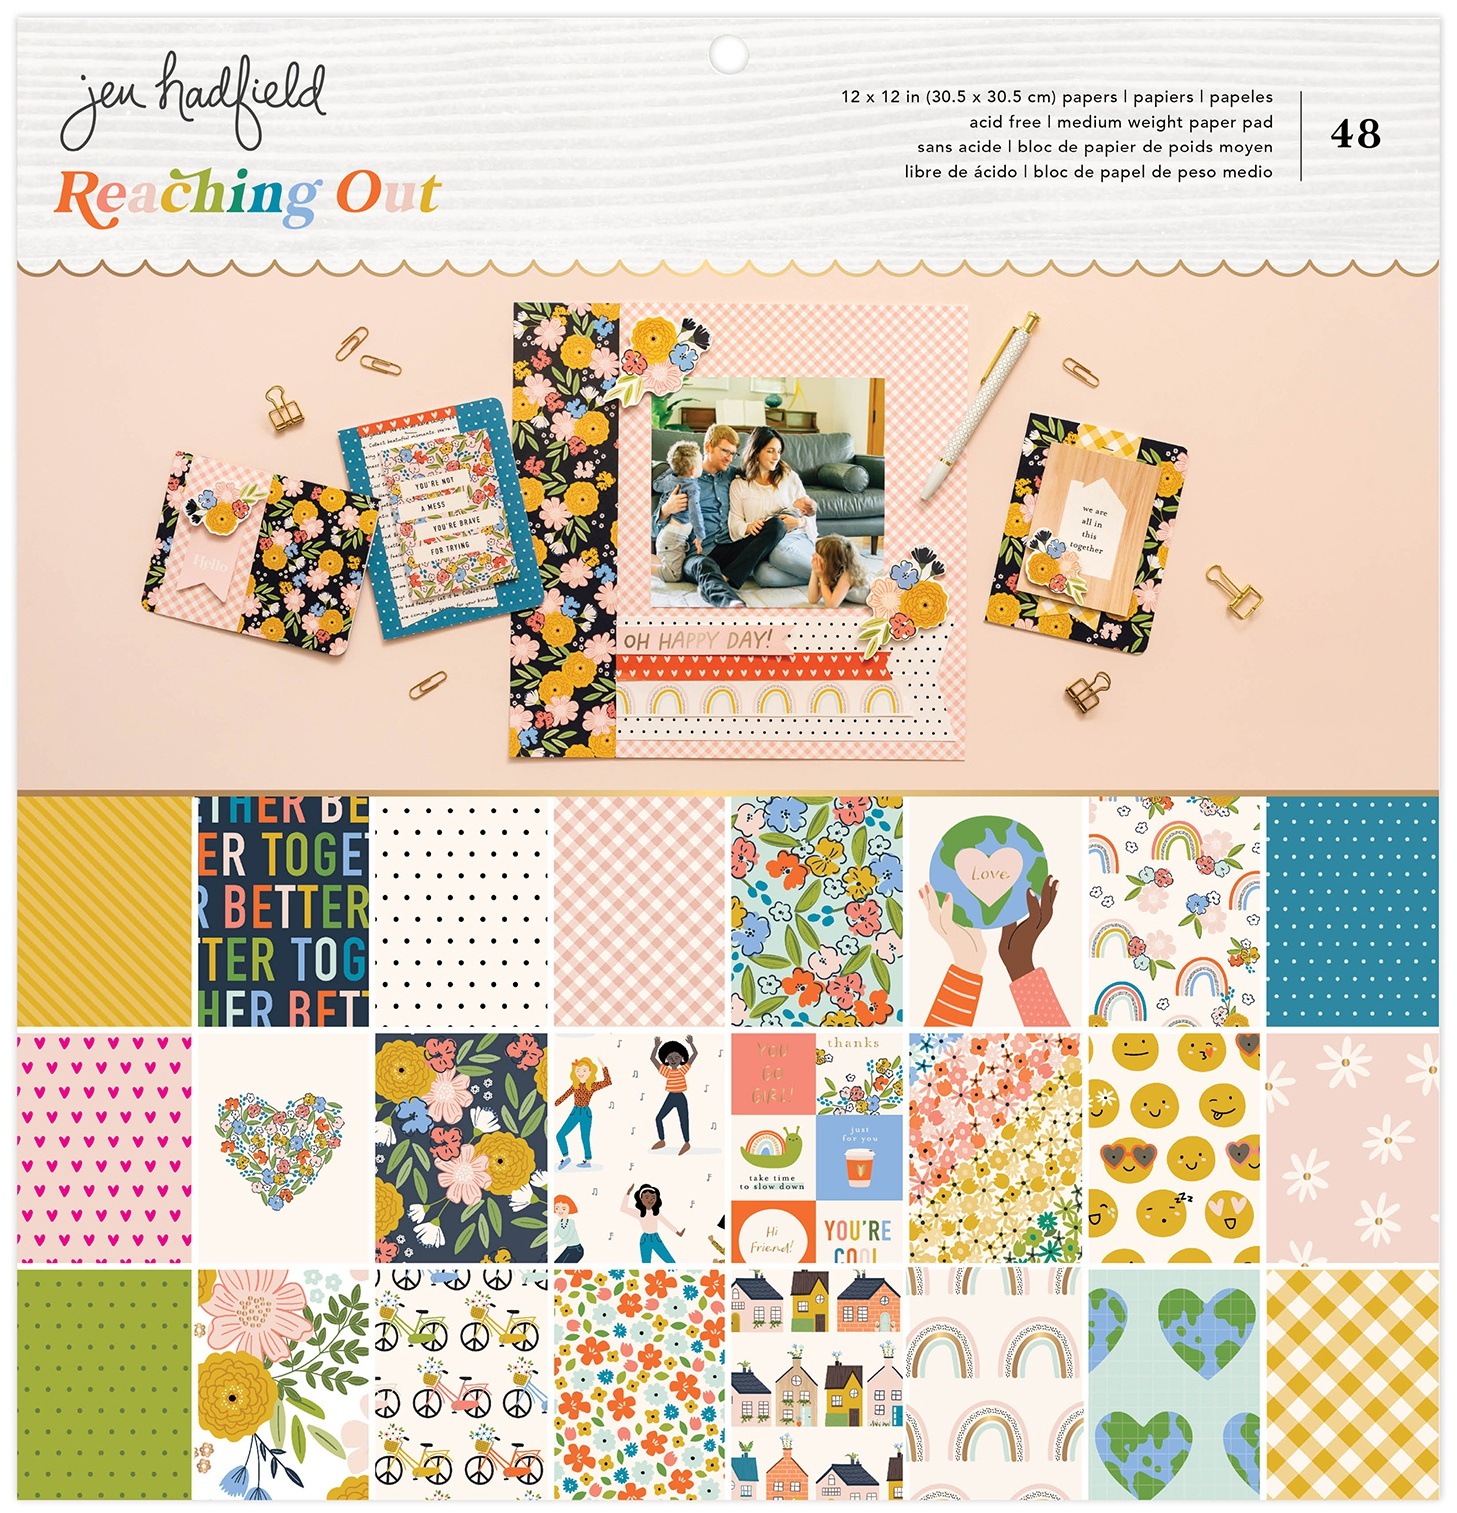 American Crafts Single-Sided Paper Pad 12X12 48/Pkg-Jen Hadfield Reaching Out